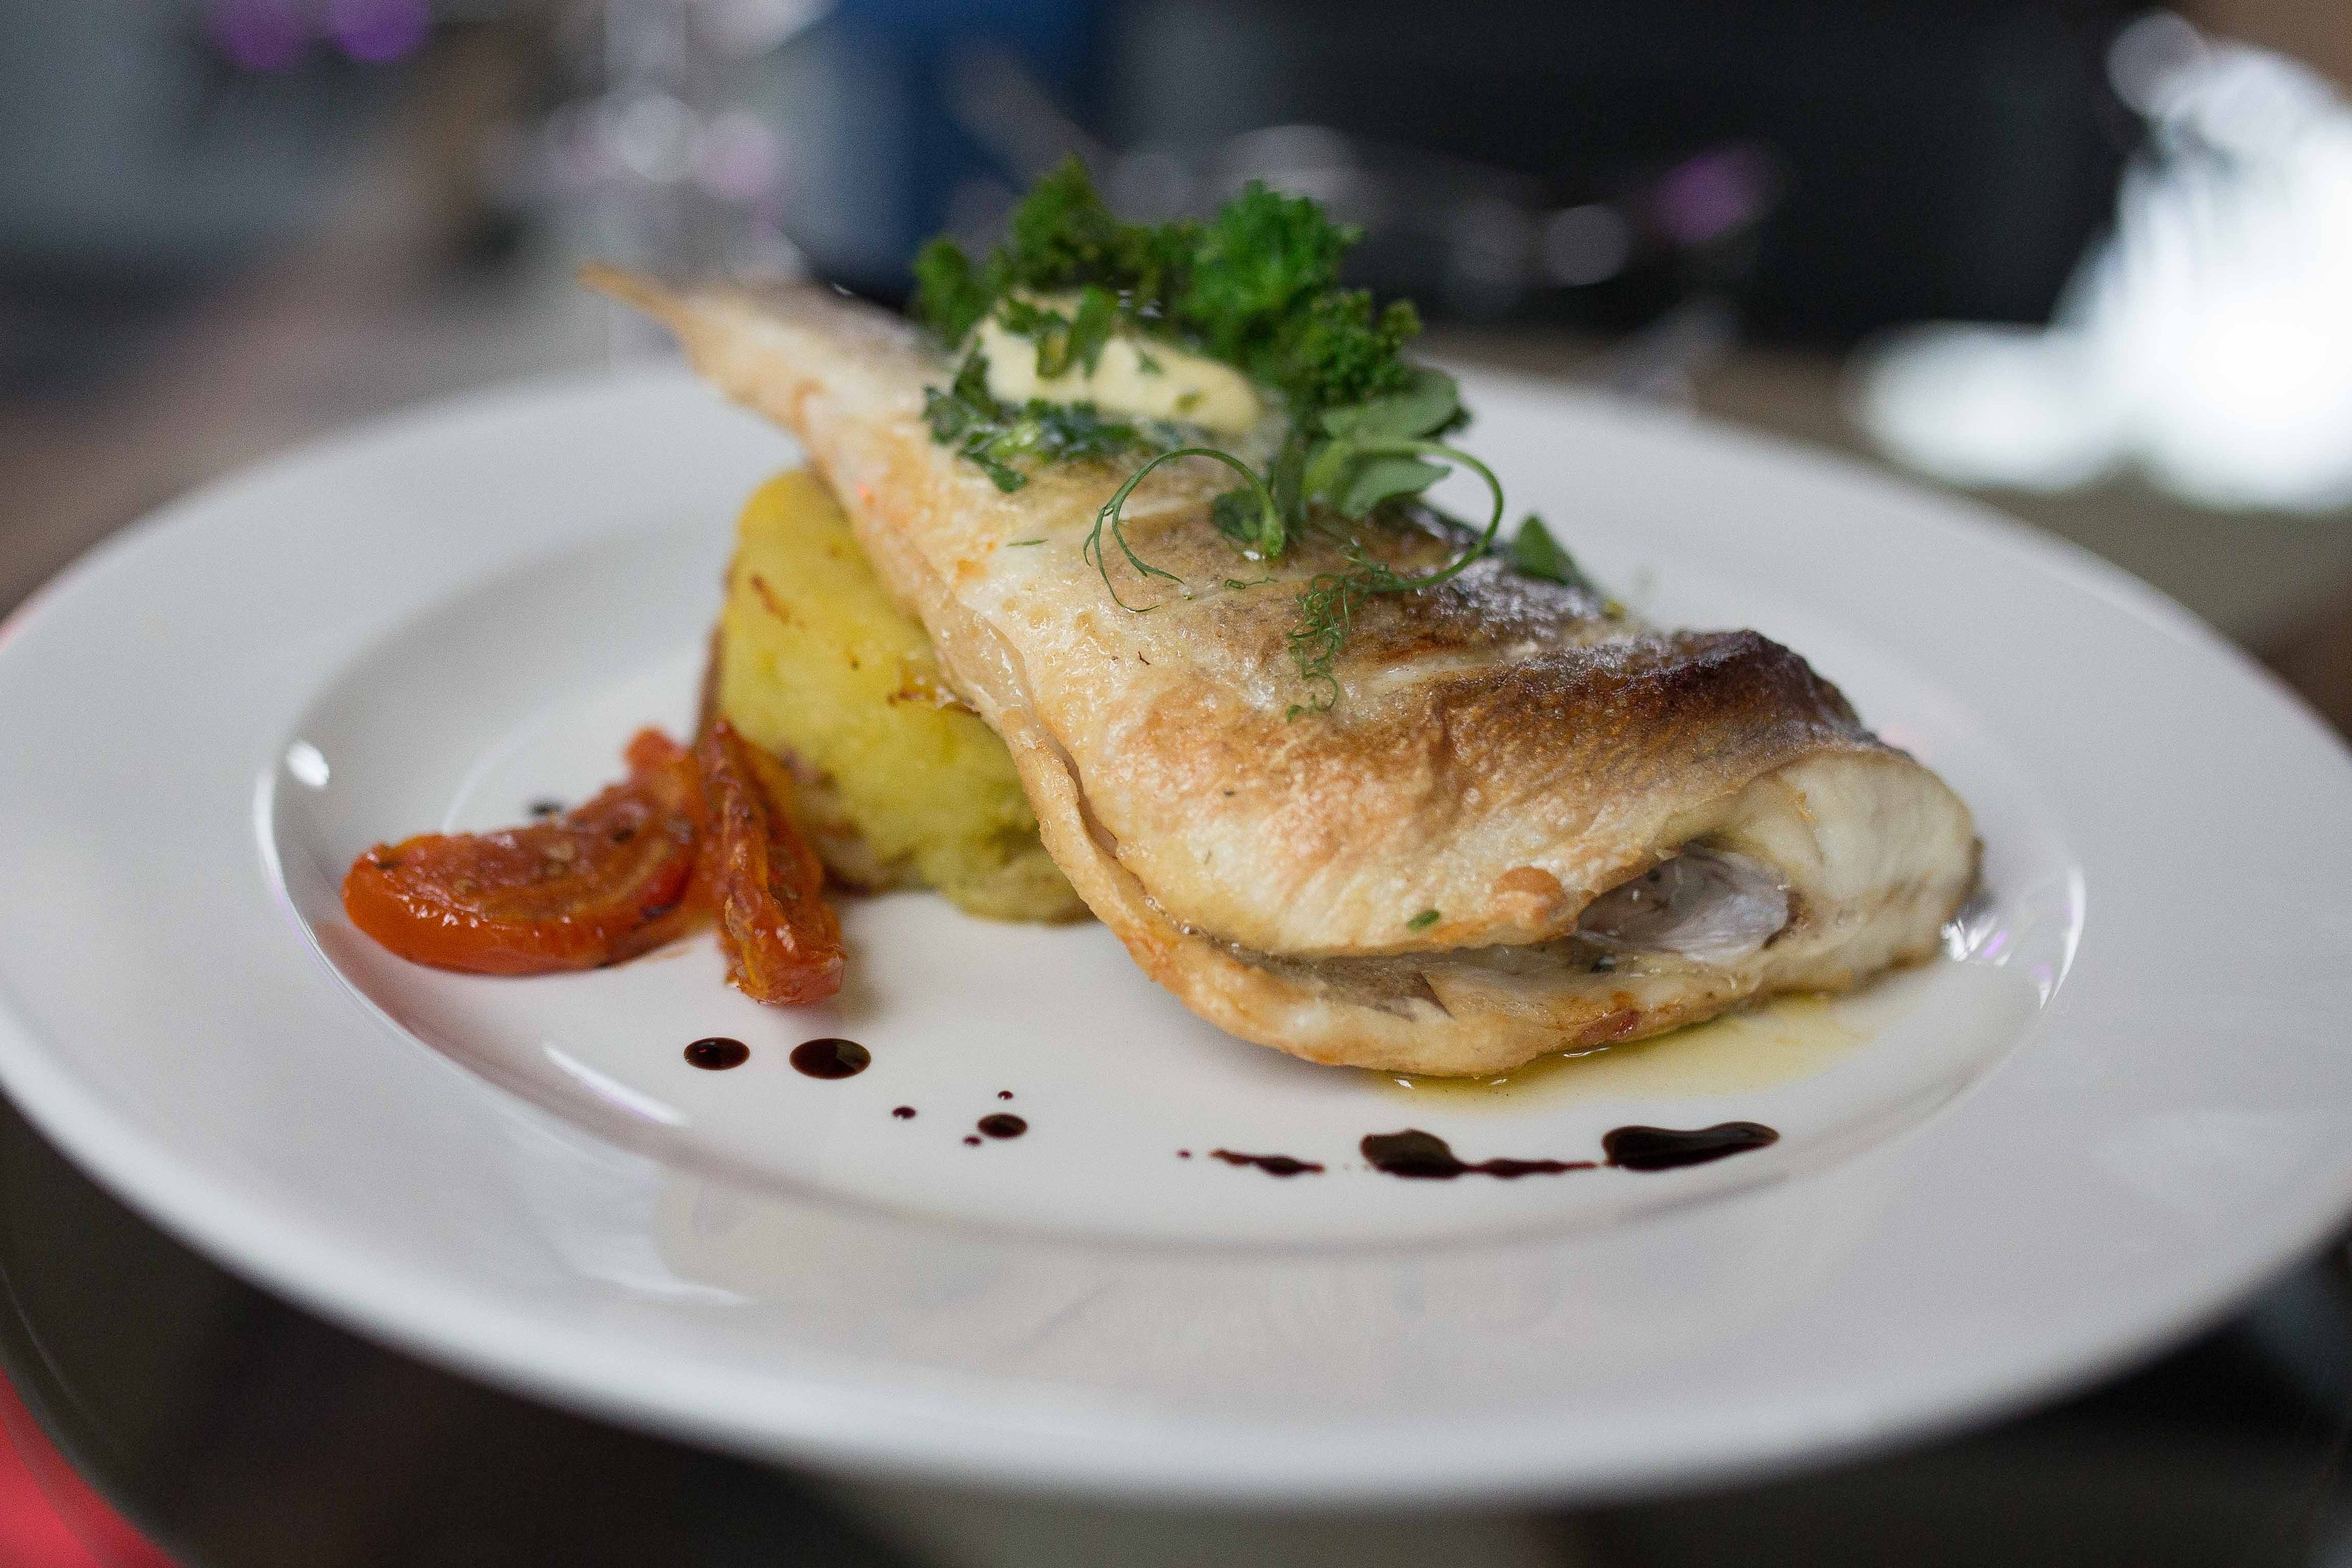 Oven-baked whole red gurnard served with garlic and parsley crushed potatoes and lemon butter